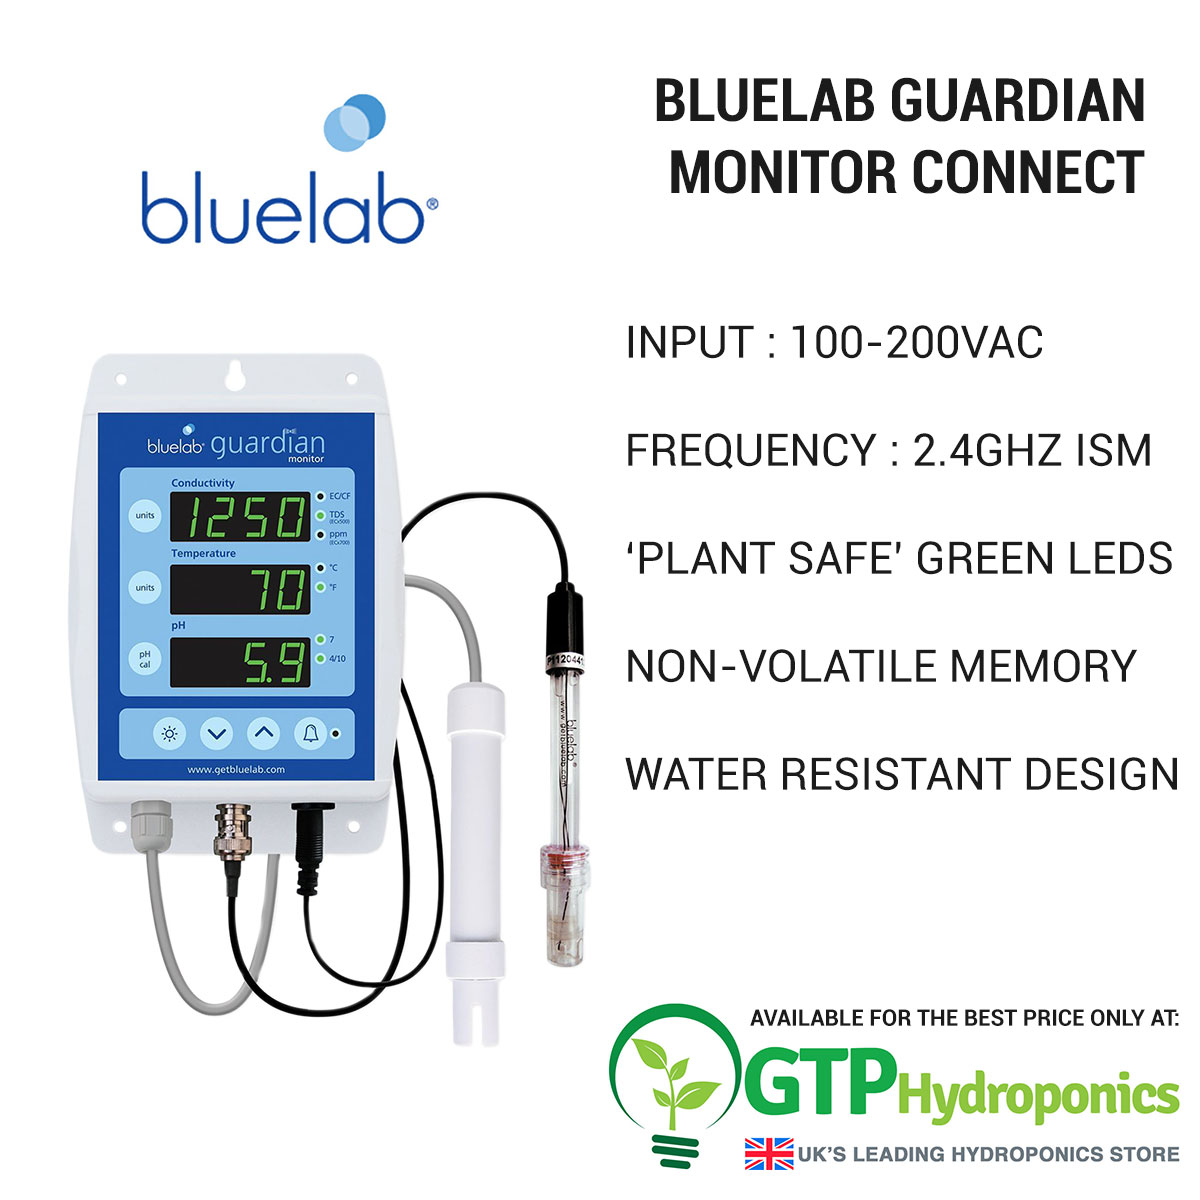 BlueLab Guardian Monitor Connect overview